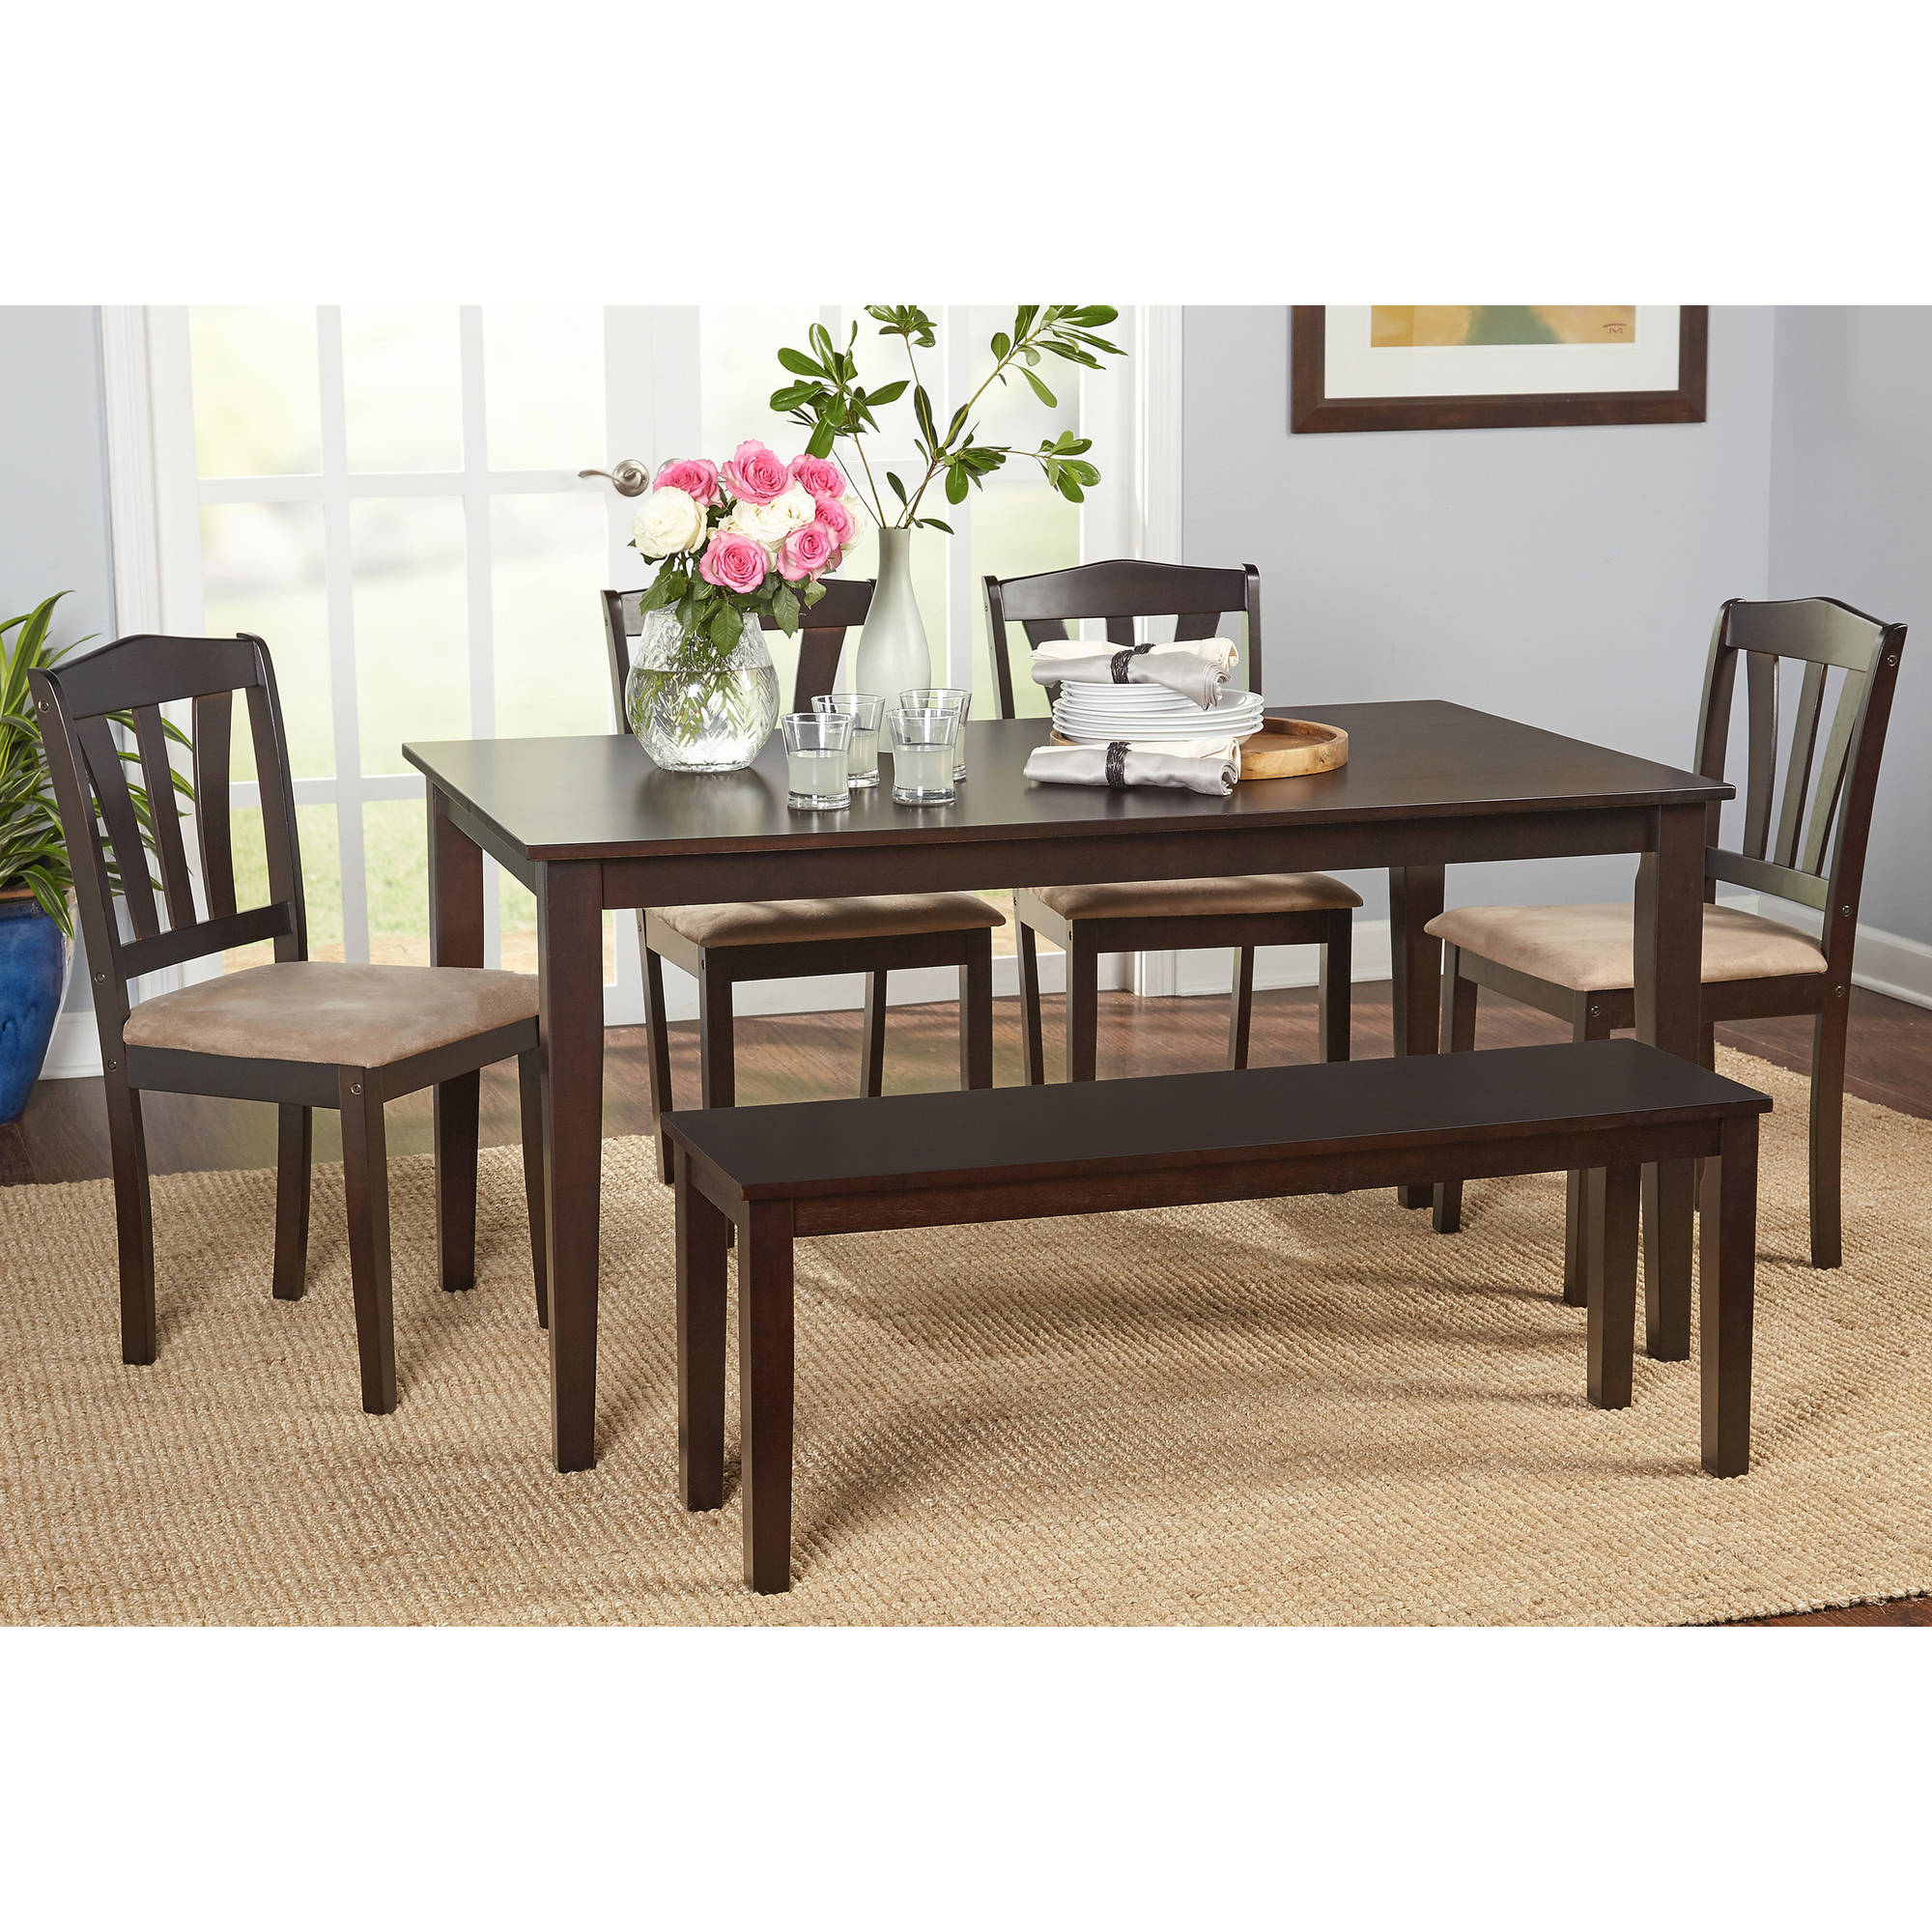 Click here to buy Metropolitan 6-Piece Dining Room Set with Bench, Espresso, Box 1 of 2 by Generic.